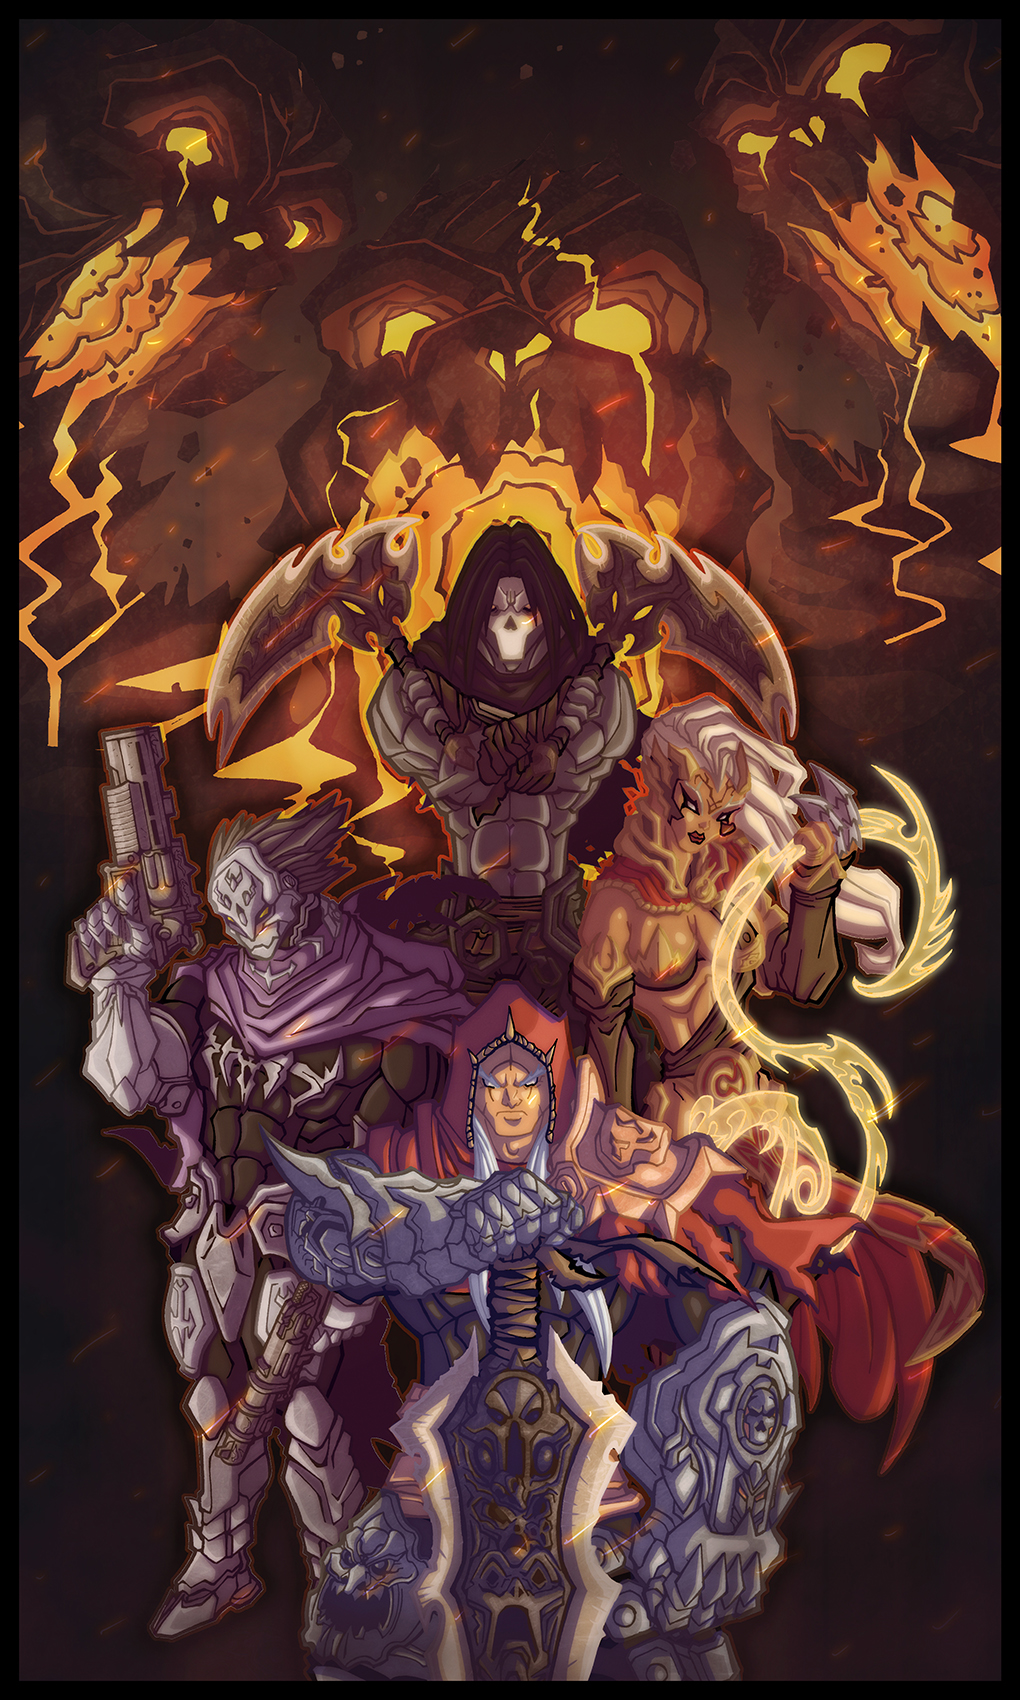 Darksiders Brotherhood by nfteixeira on DeviantArt